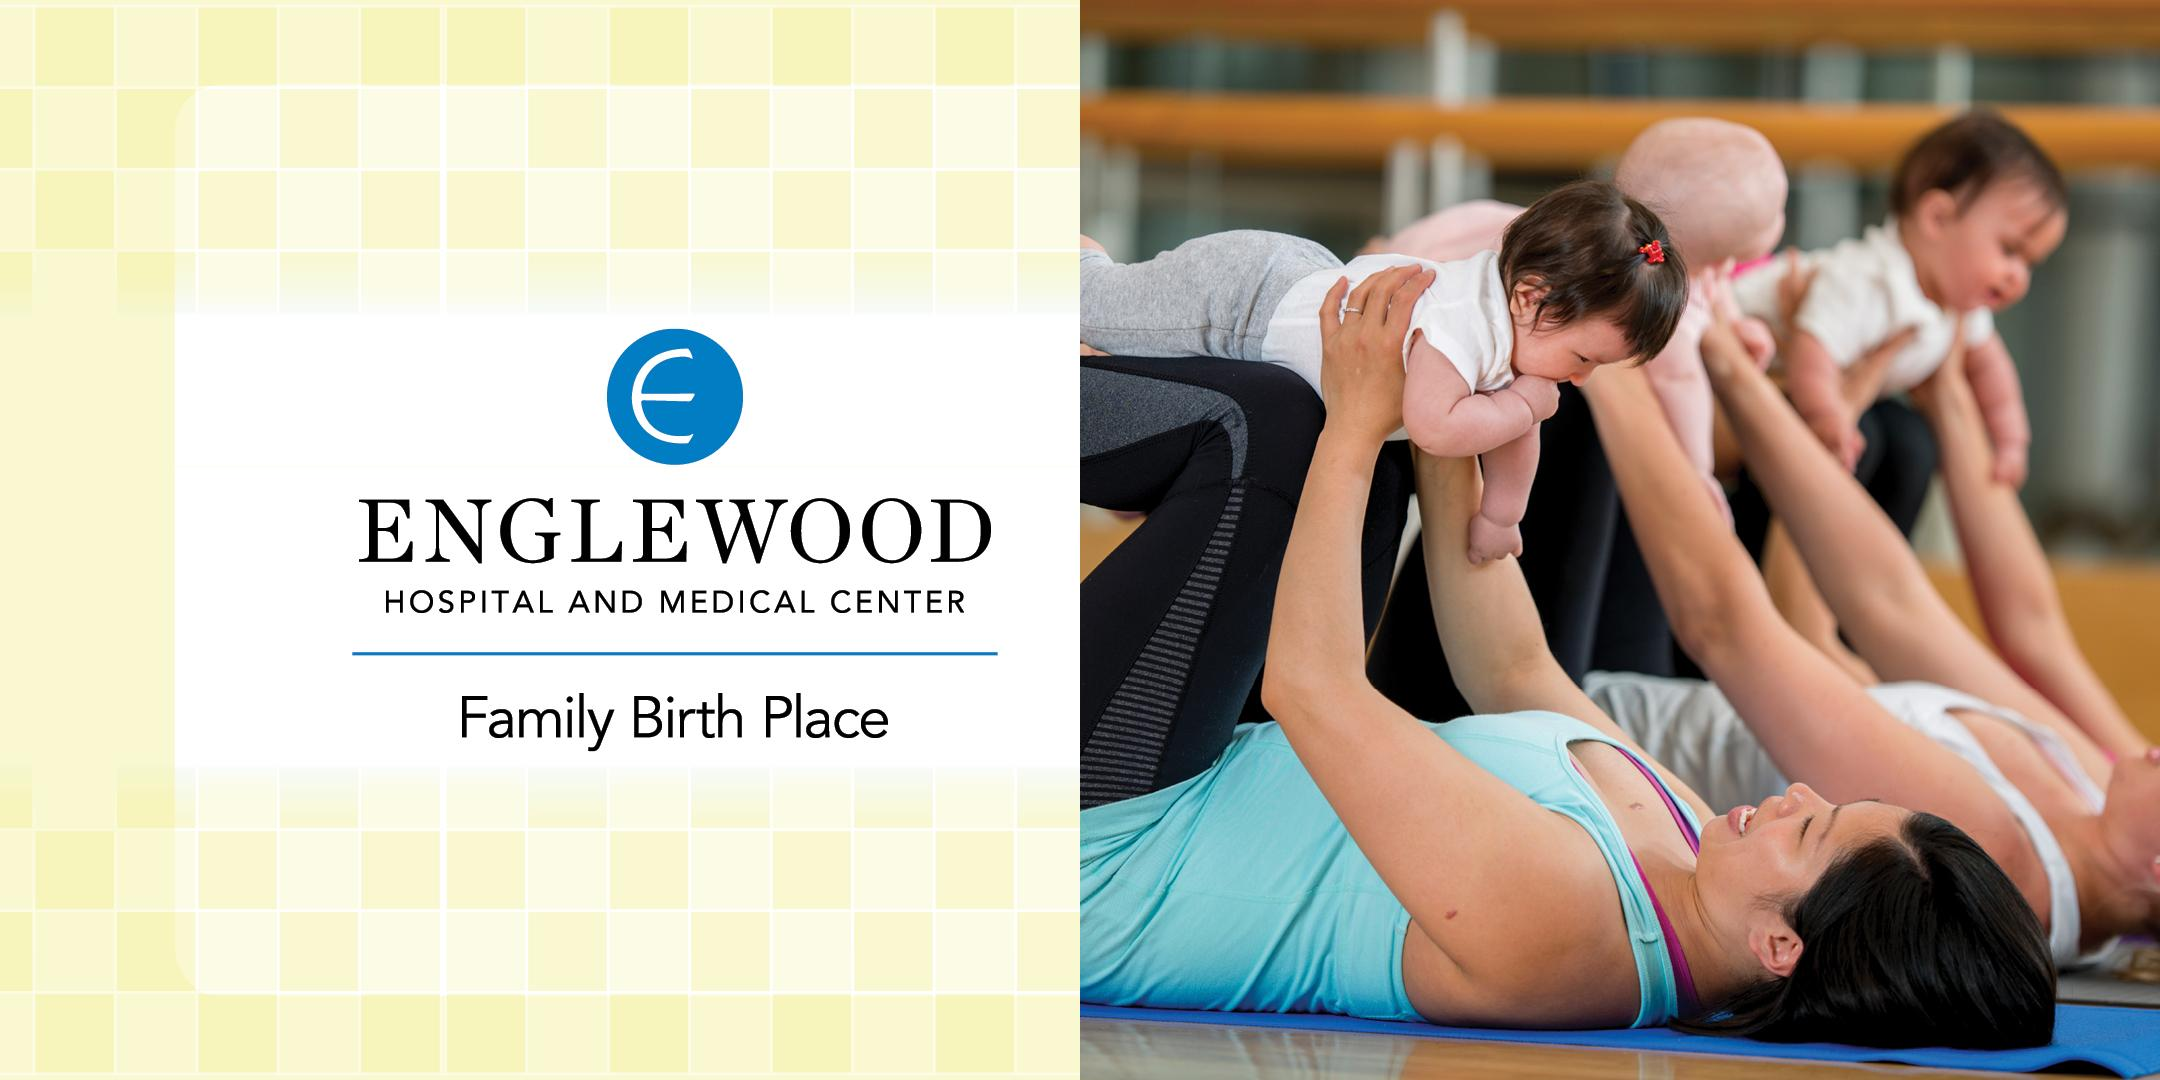 More info: Mommy and Me Postnatal Yoga Series (MARCH 8-APRIL 12)